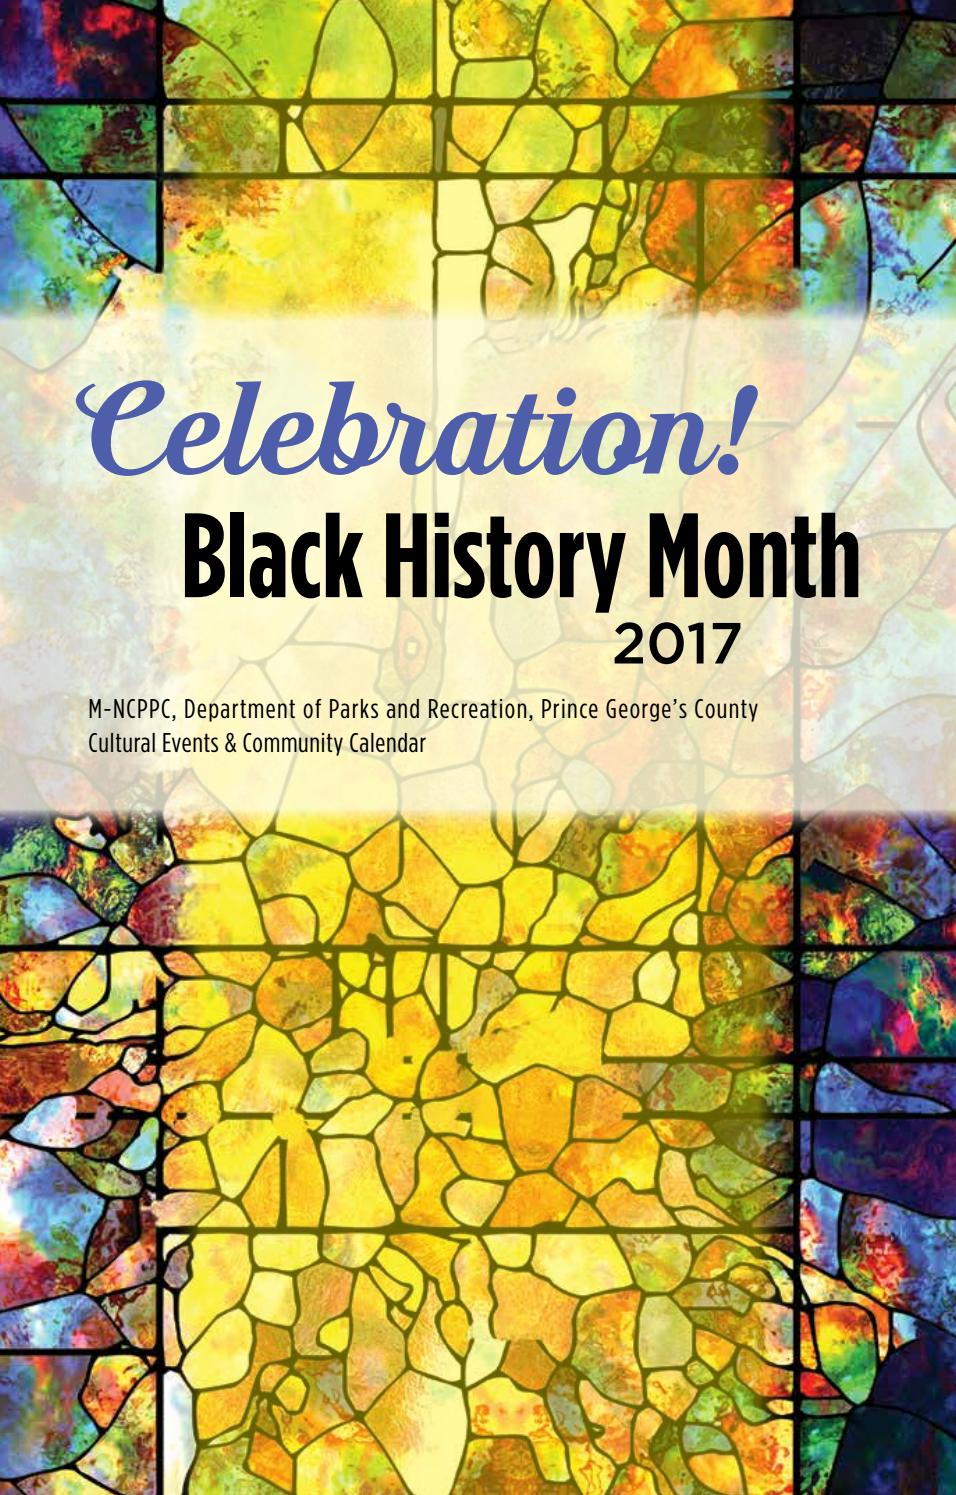 2017 Black History Month by M-NCPPC, Department of Parks